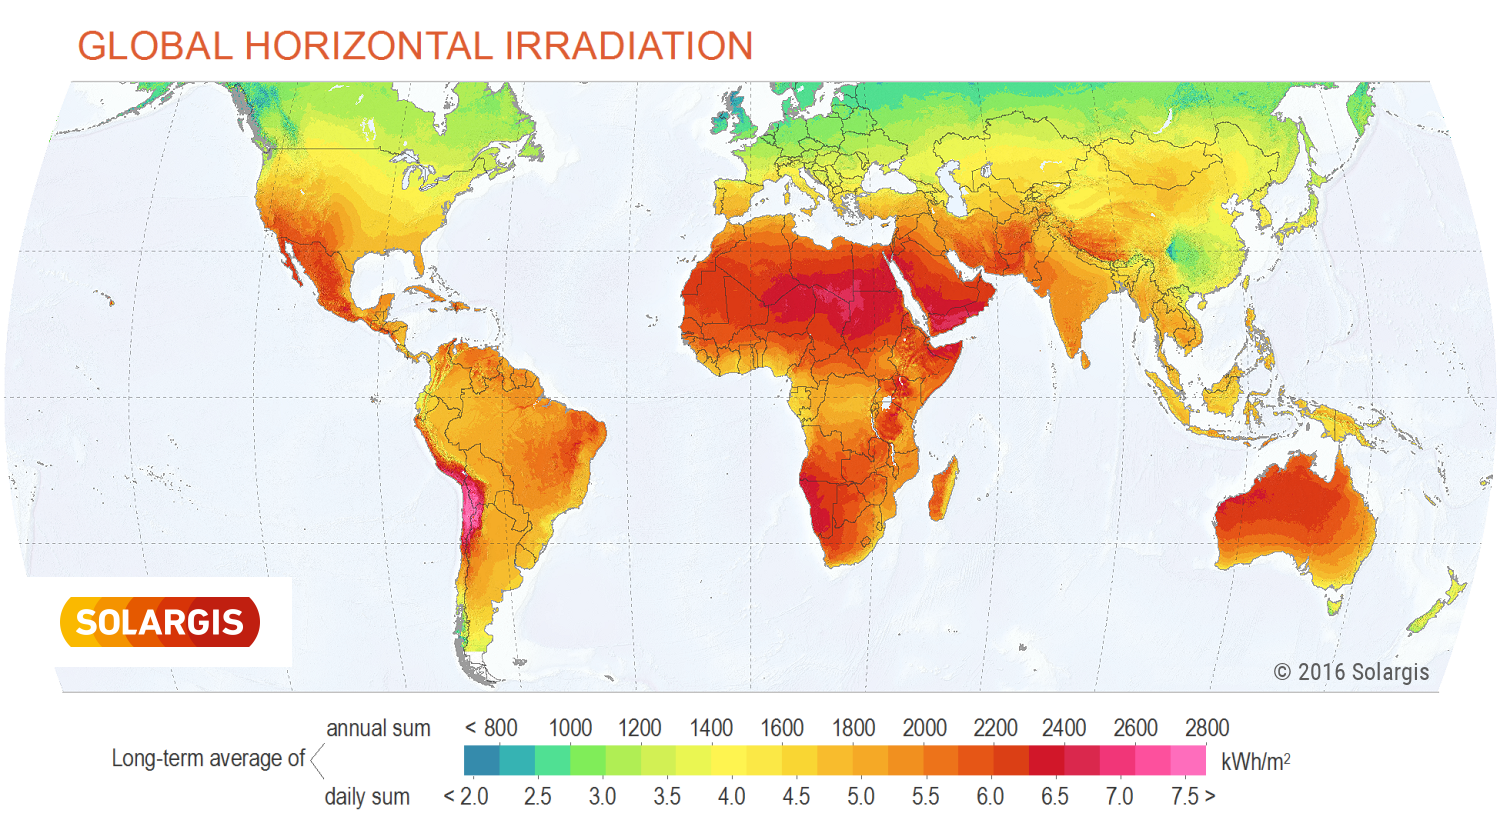 How the potential for solar energy varies across the world